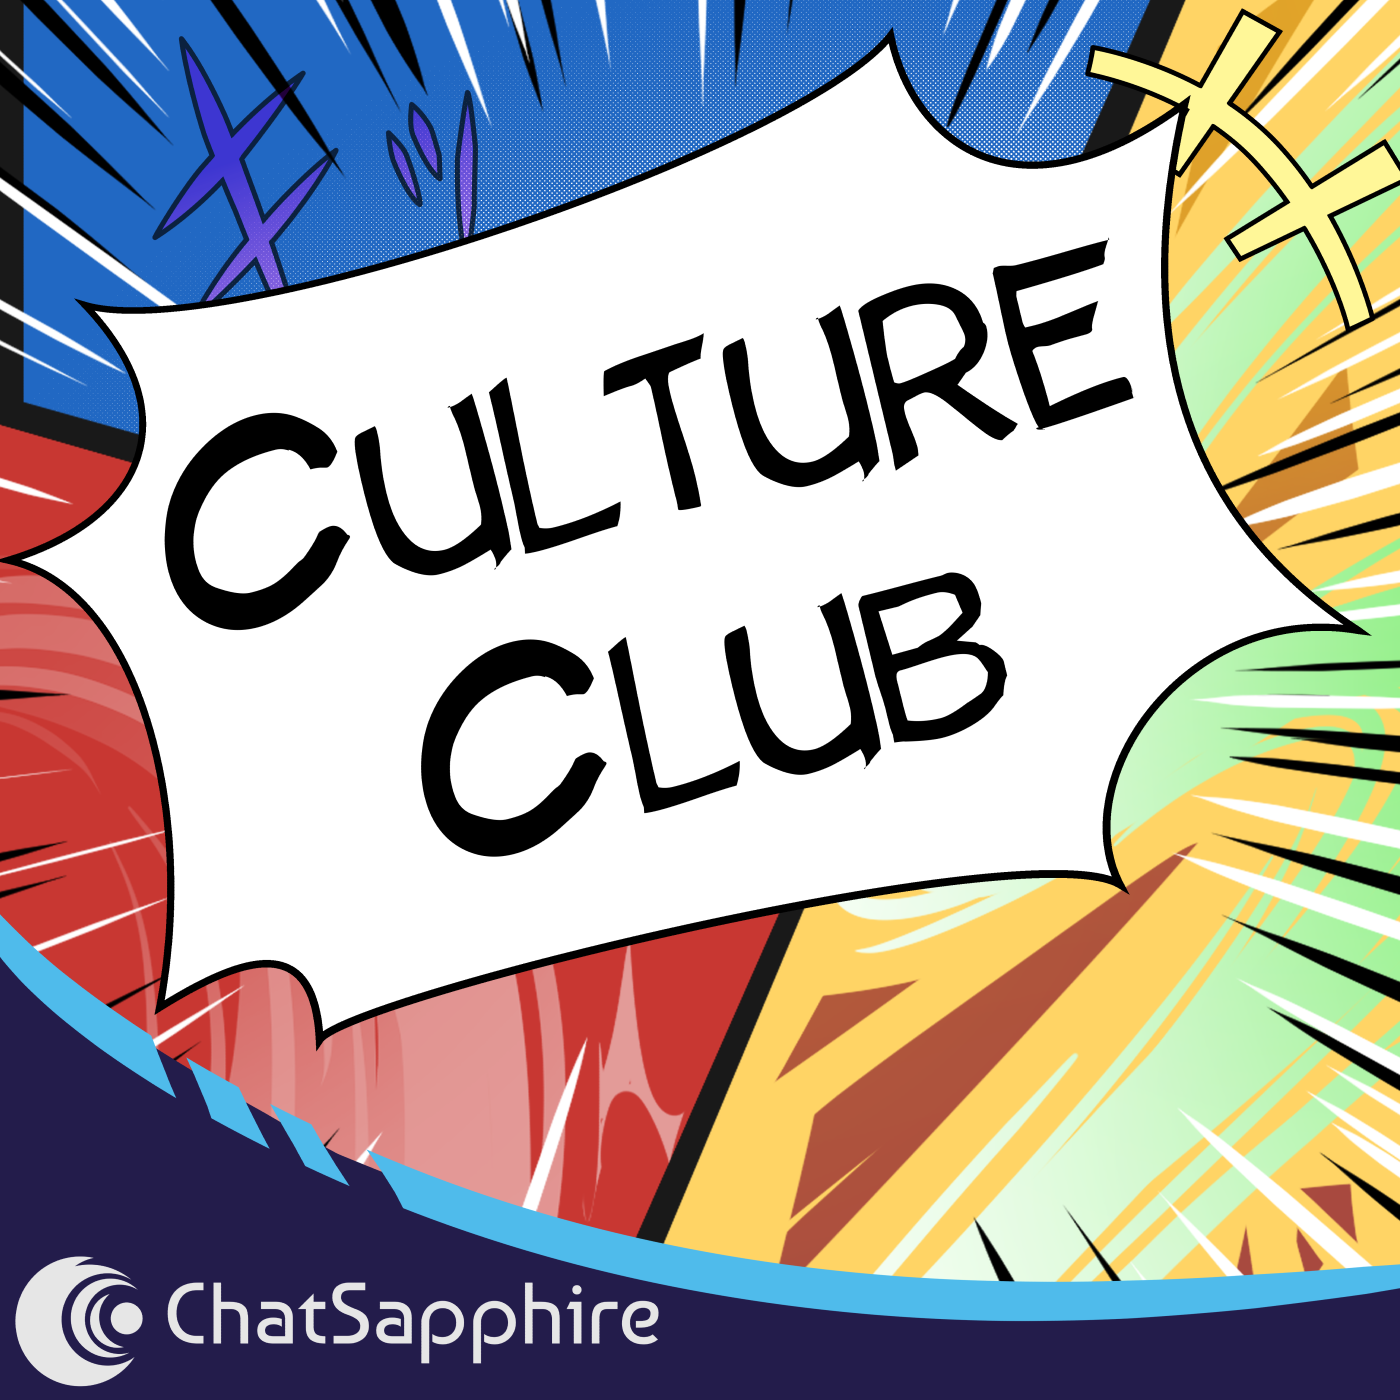 Show artwork for Culture Club by ChatSapphire